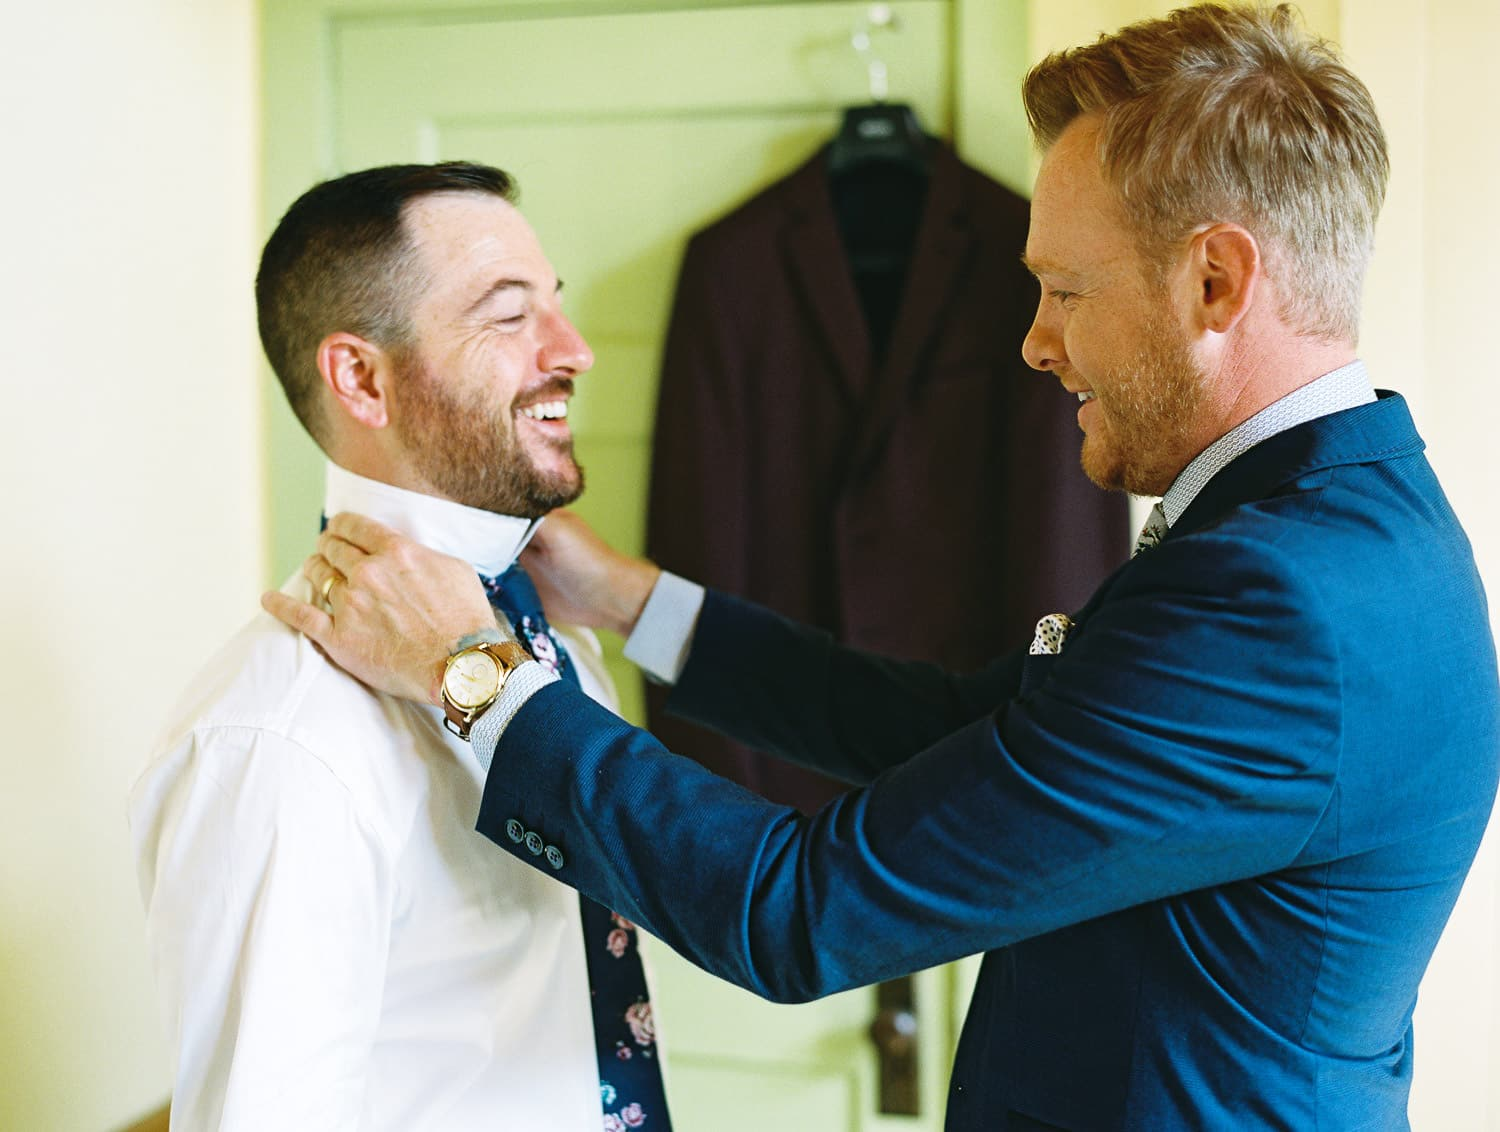 Groom-Getting-Ready-Inspiration-Greg-Ross